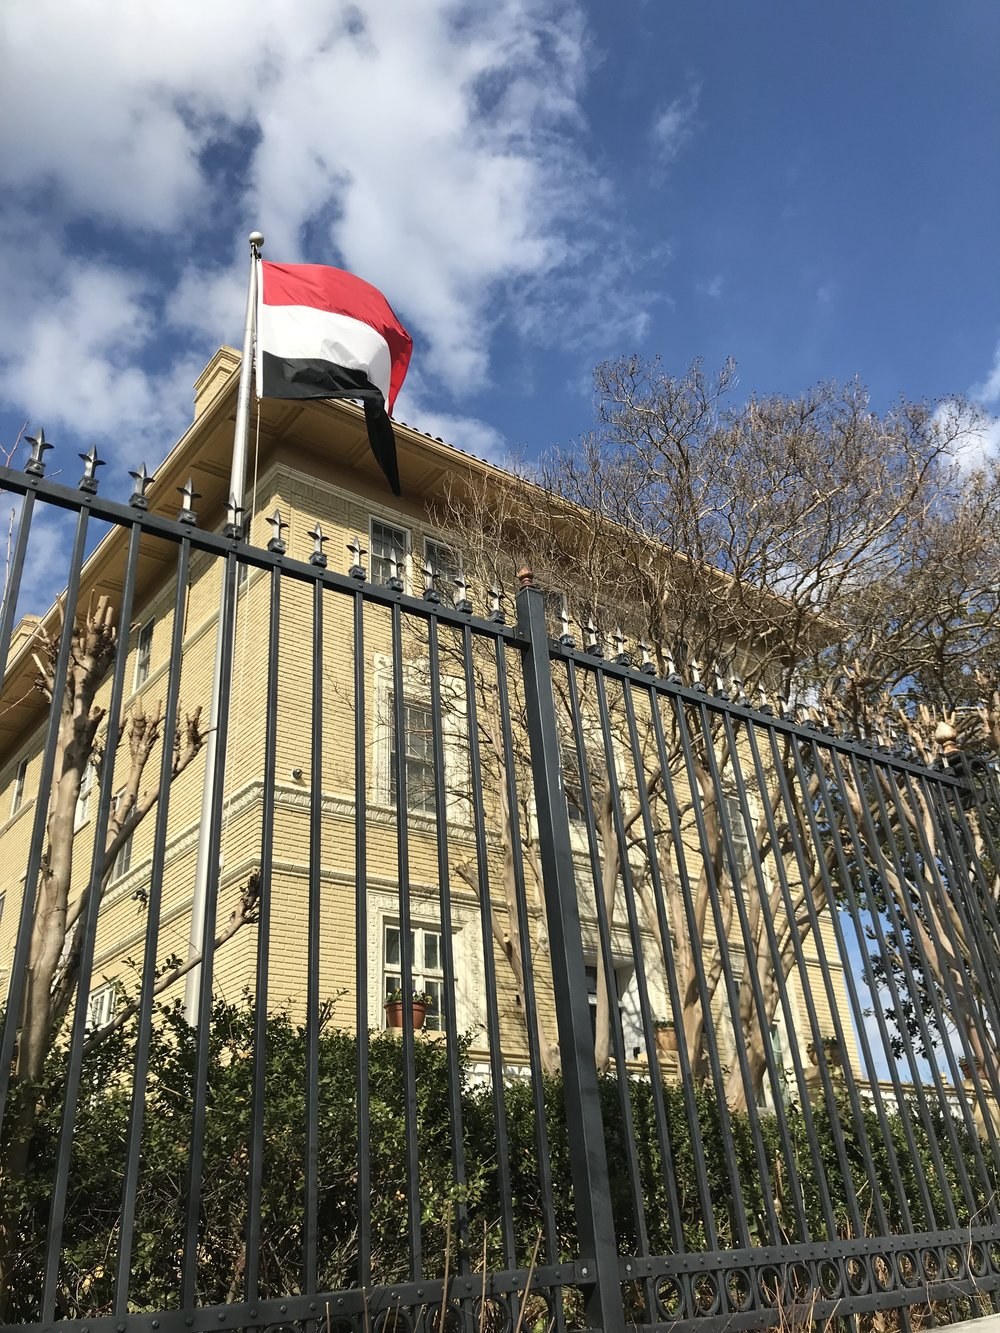 The Embassy of Yemen.